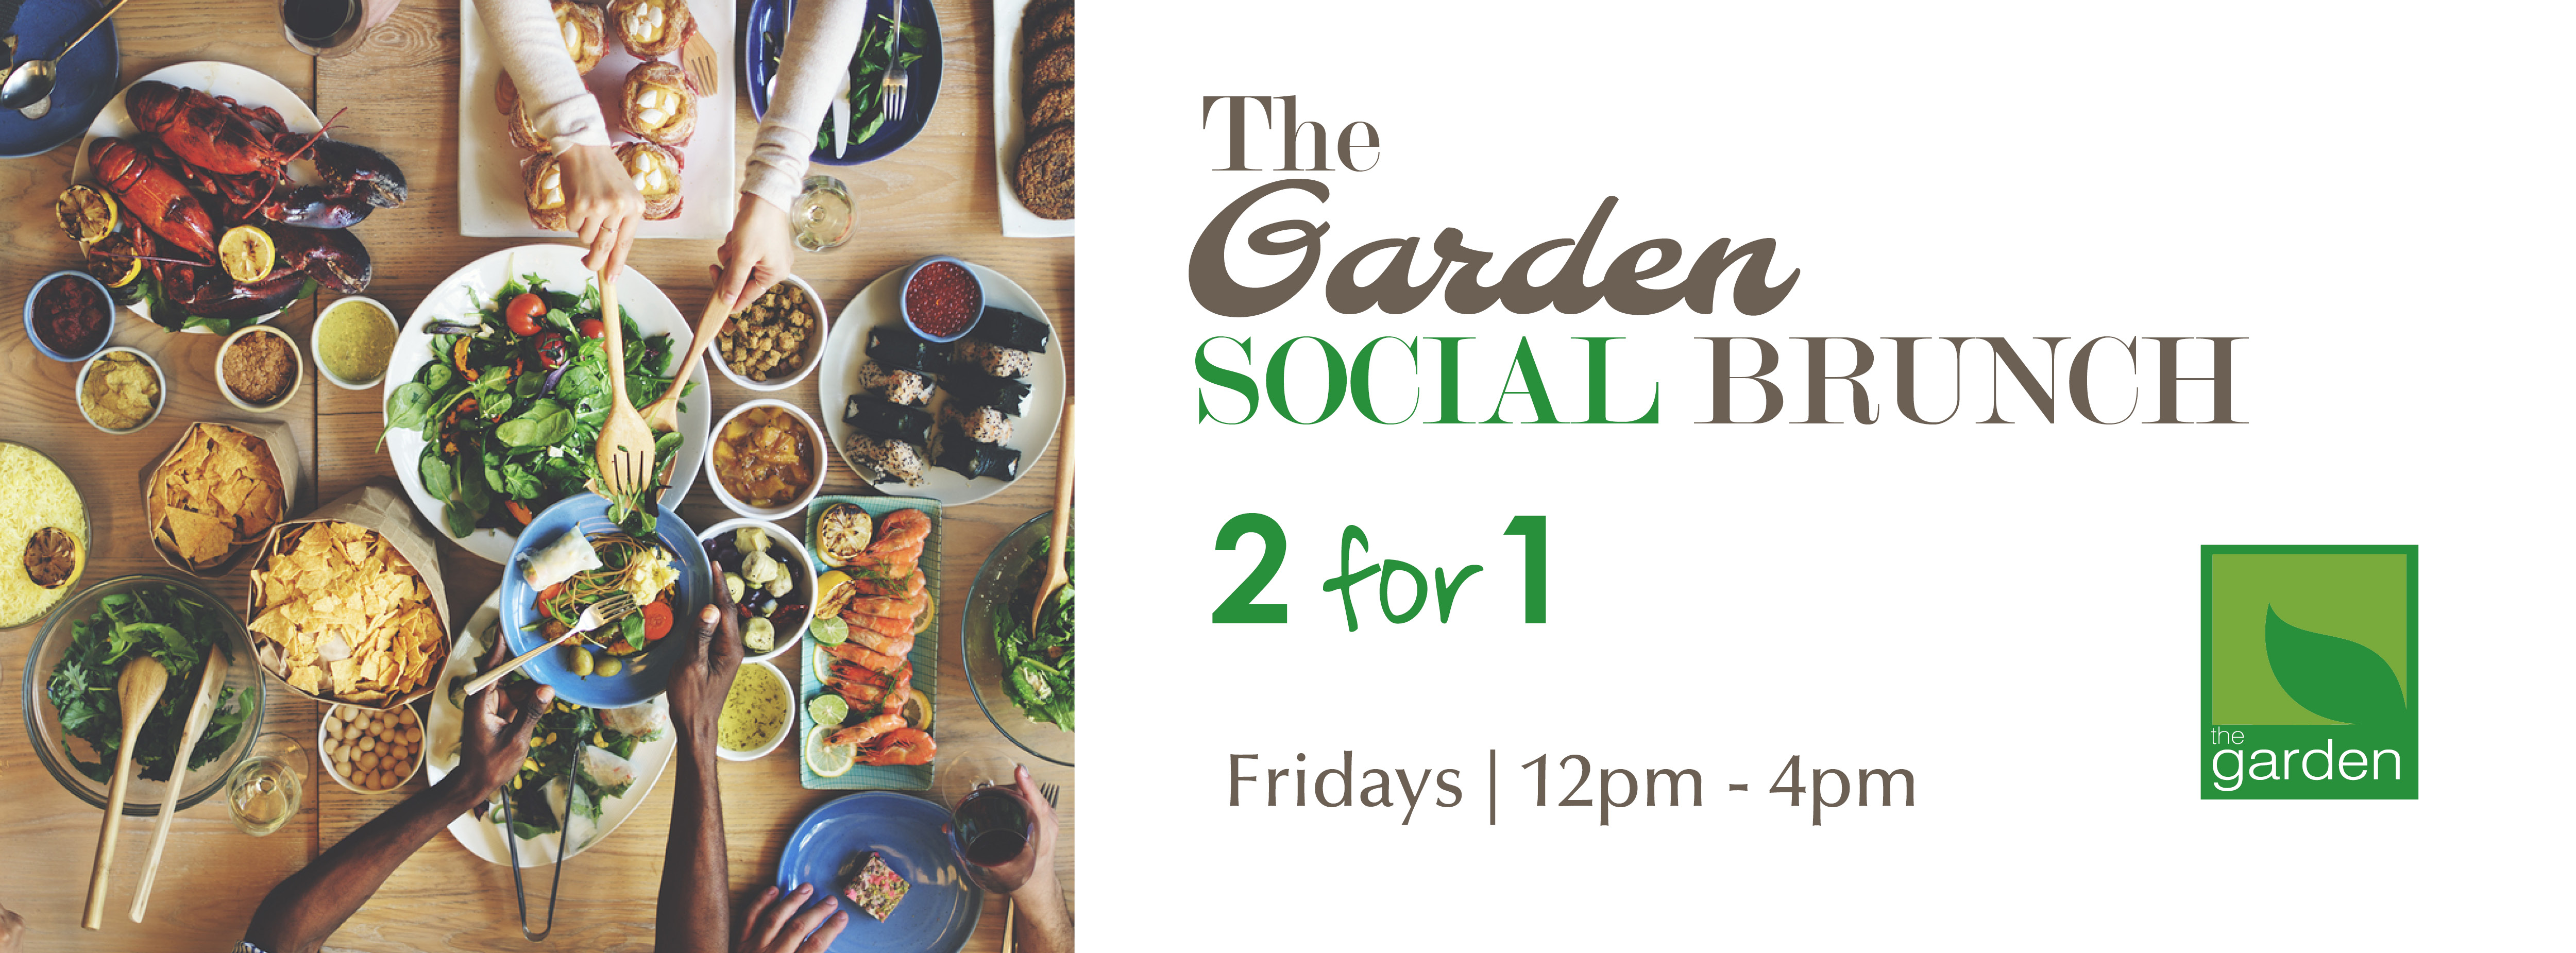 2 for 1 THE GARDEN SOCIAL BRUNCH